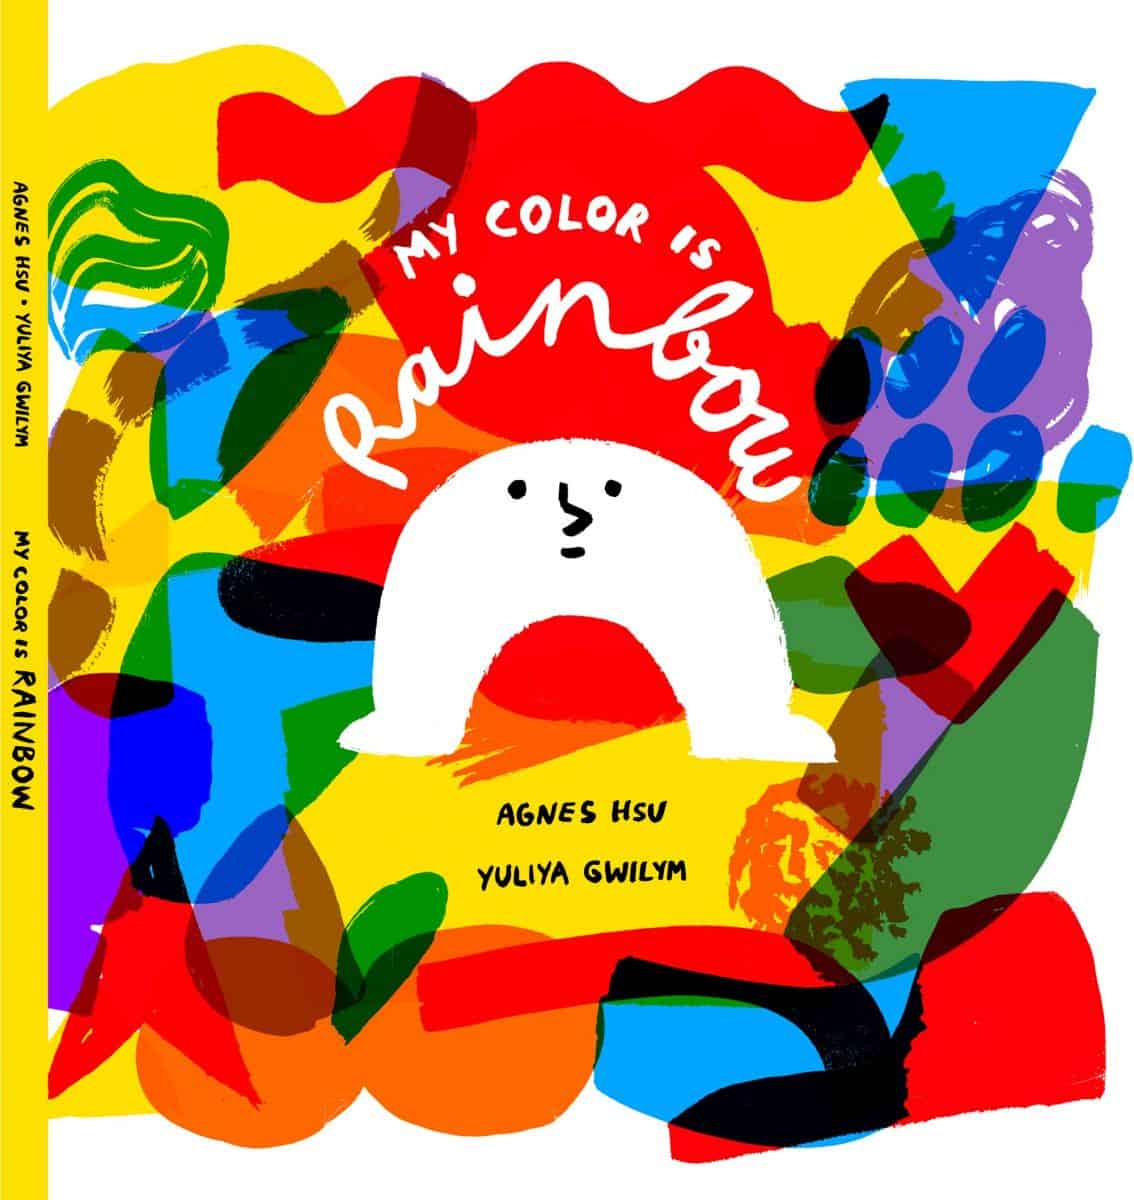 TOP 5 MUST-HAVE COLOR BOOKS FOR PRESCHOOLERS